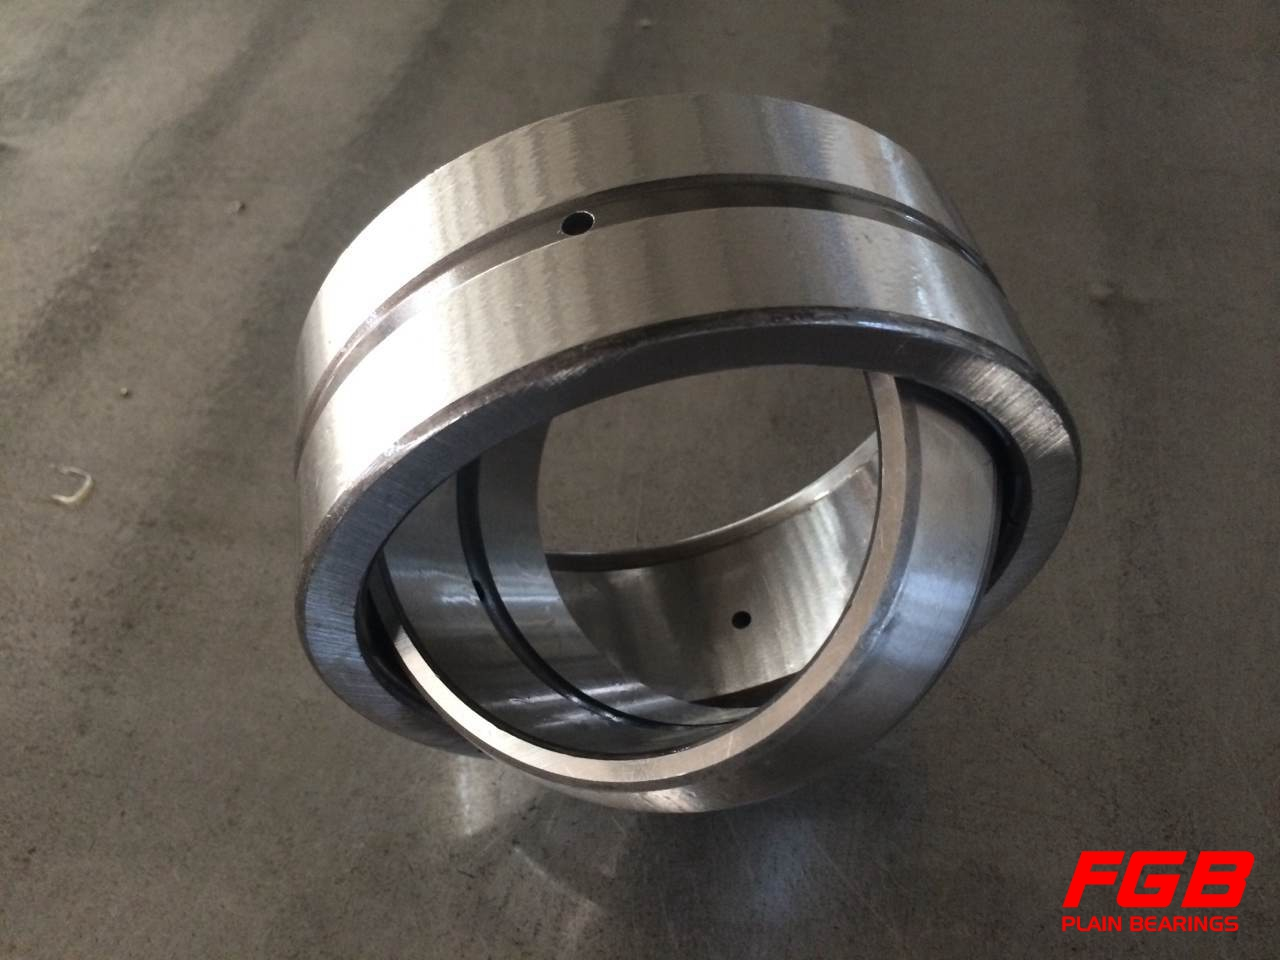 FGB spherical plain bearing01.jpg